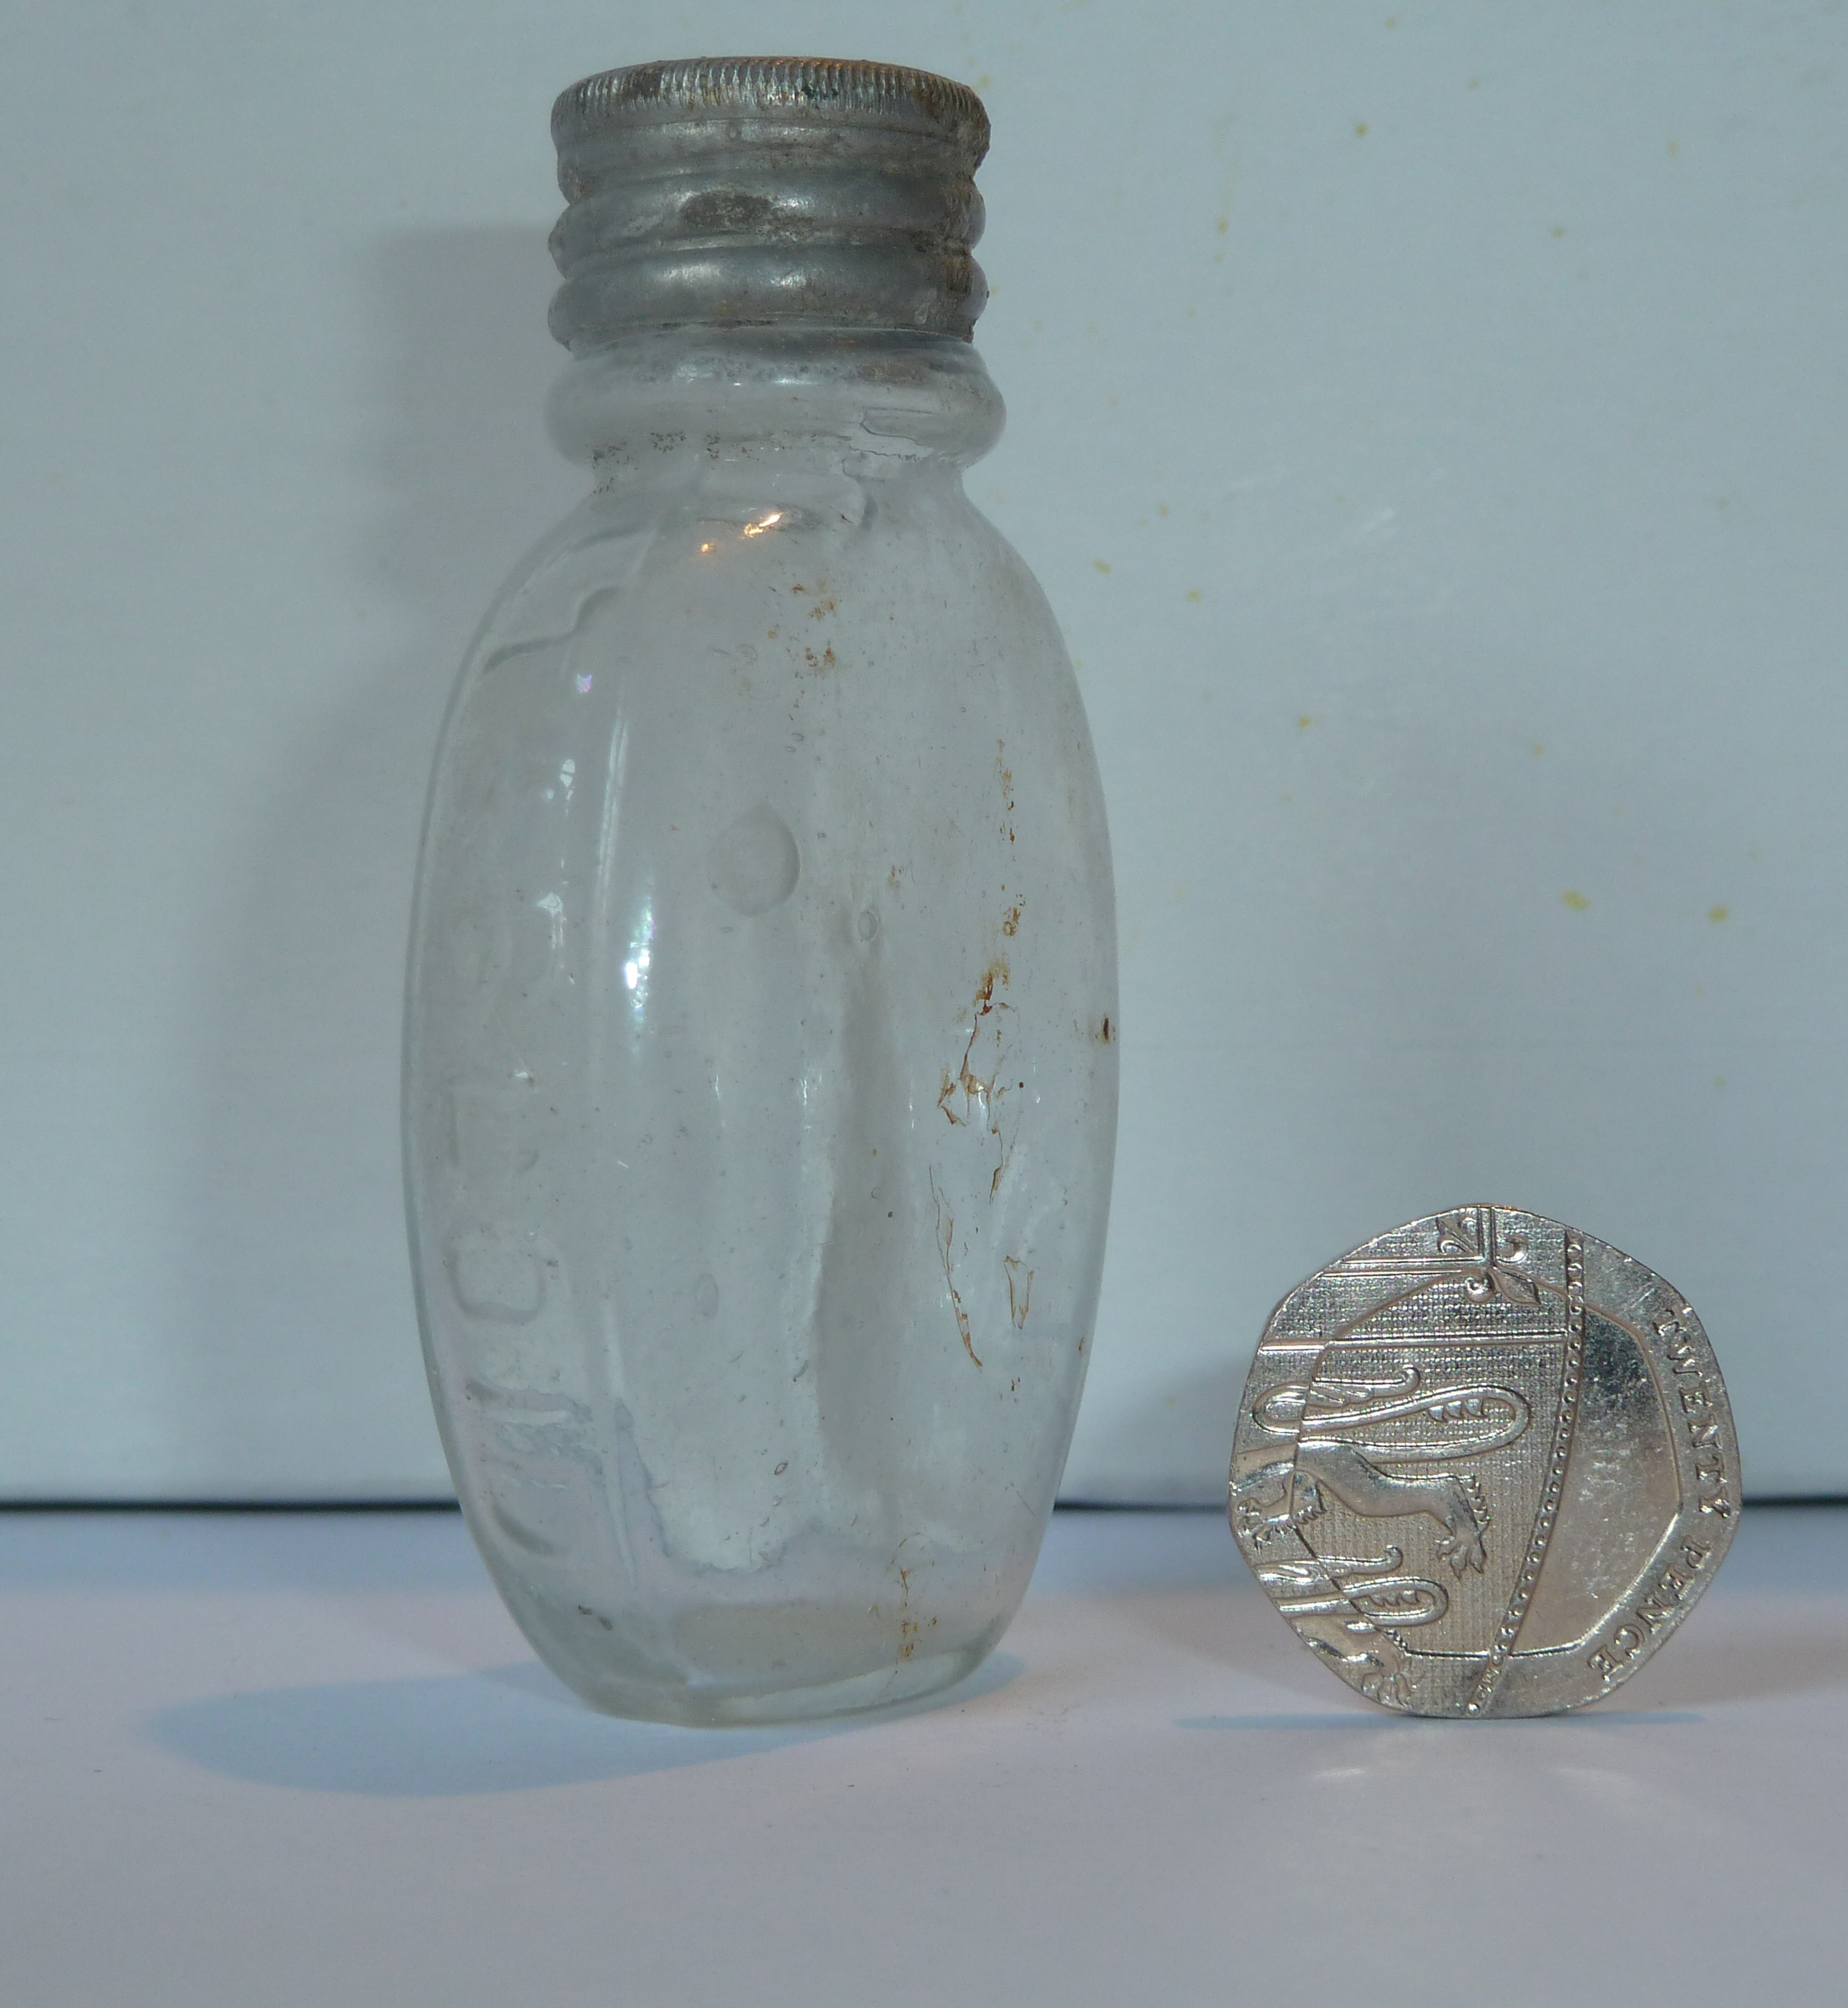 Burroughs Wellcome Pills Bottle